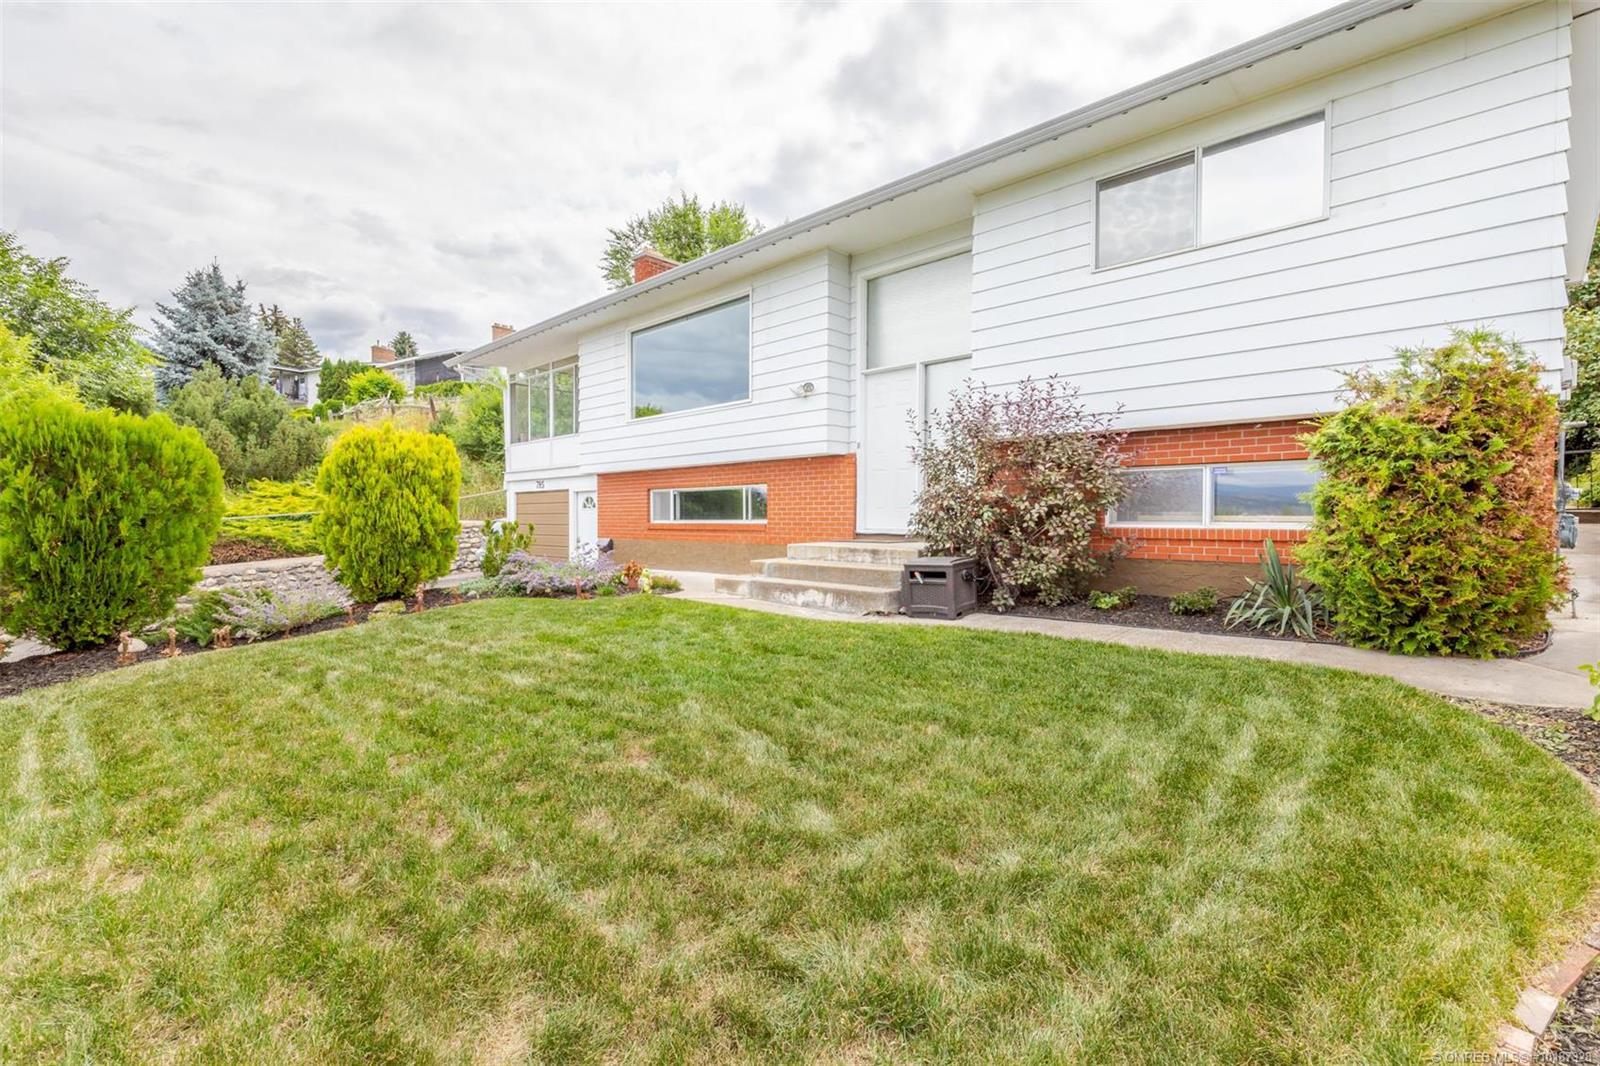 Removed: 785 Mckenzie Road, Kelowna, BC - Removed on 2019-09-12 05:33:10